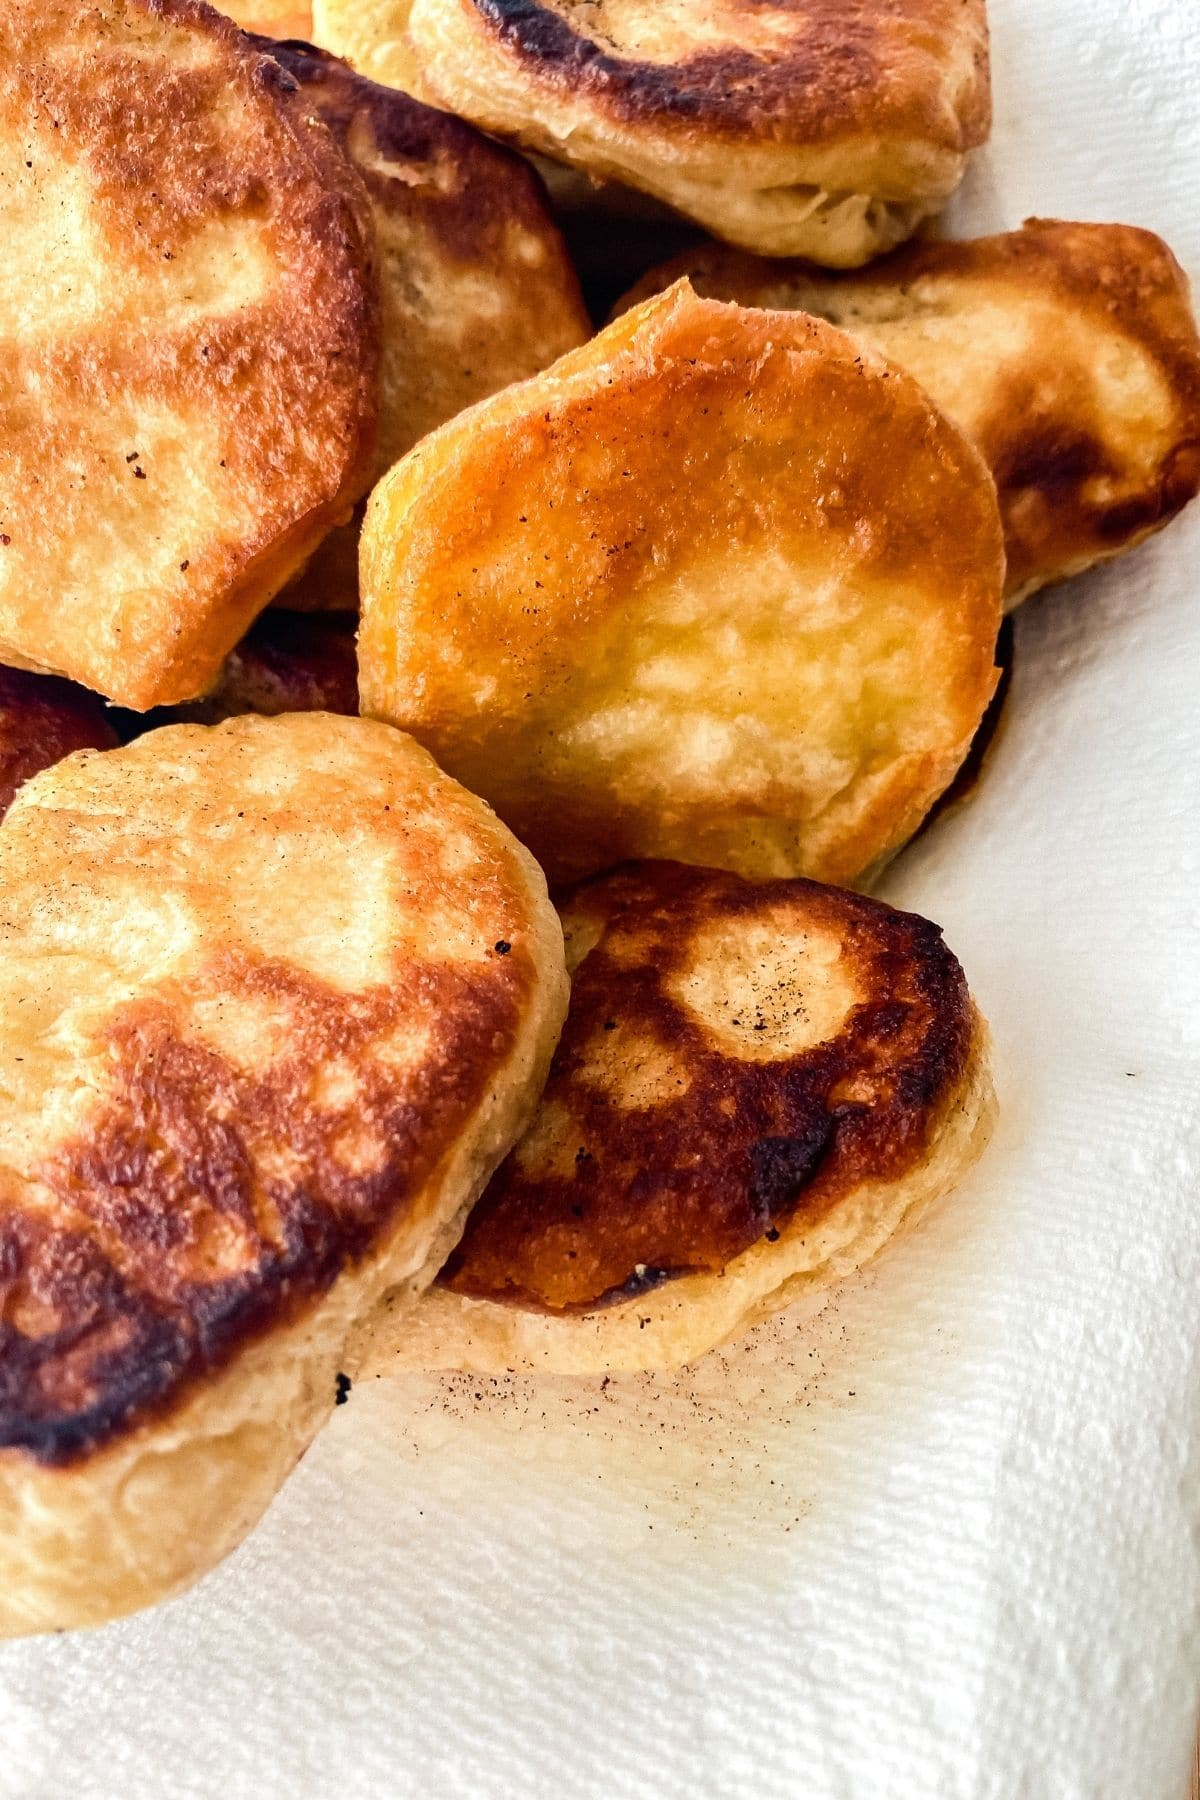 Fried biscuits on paper towels